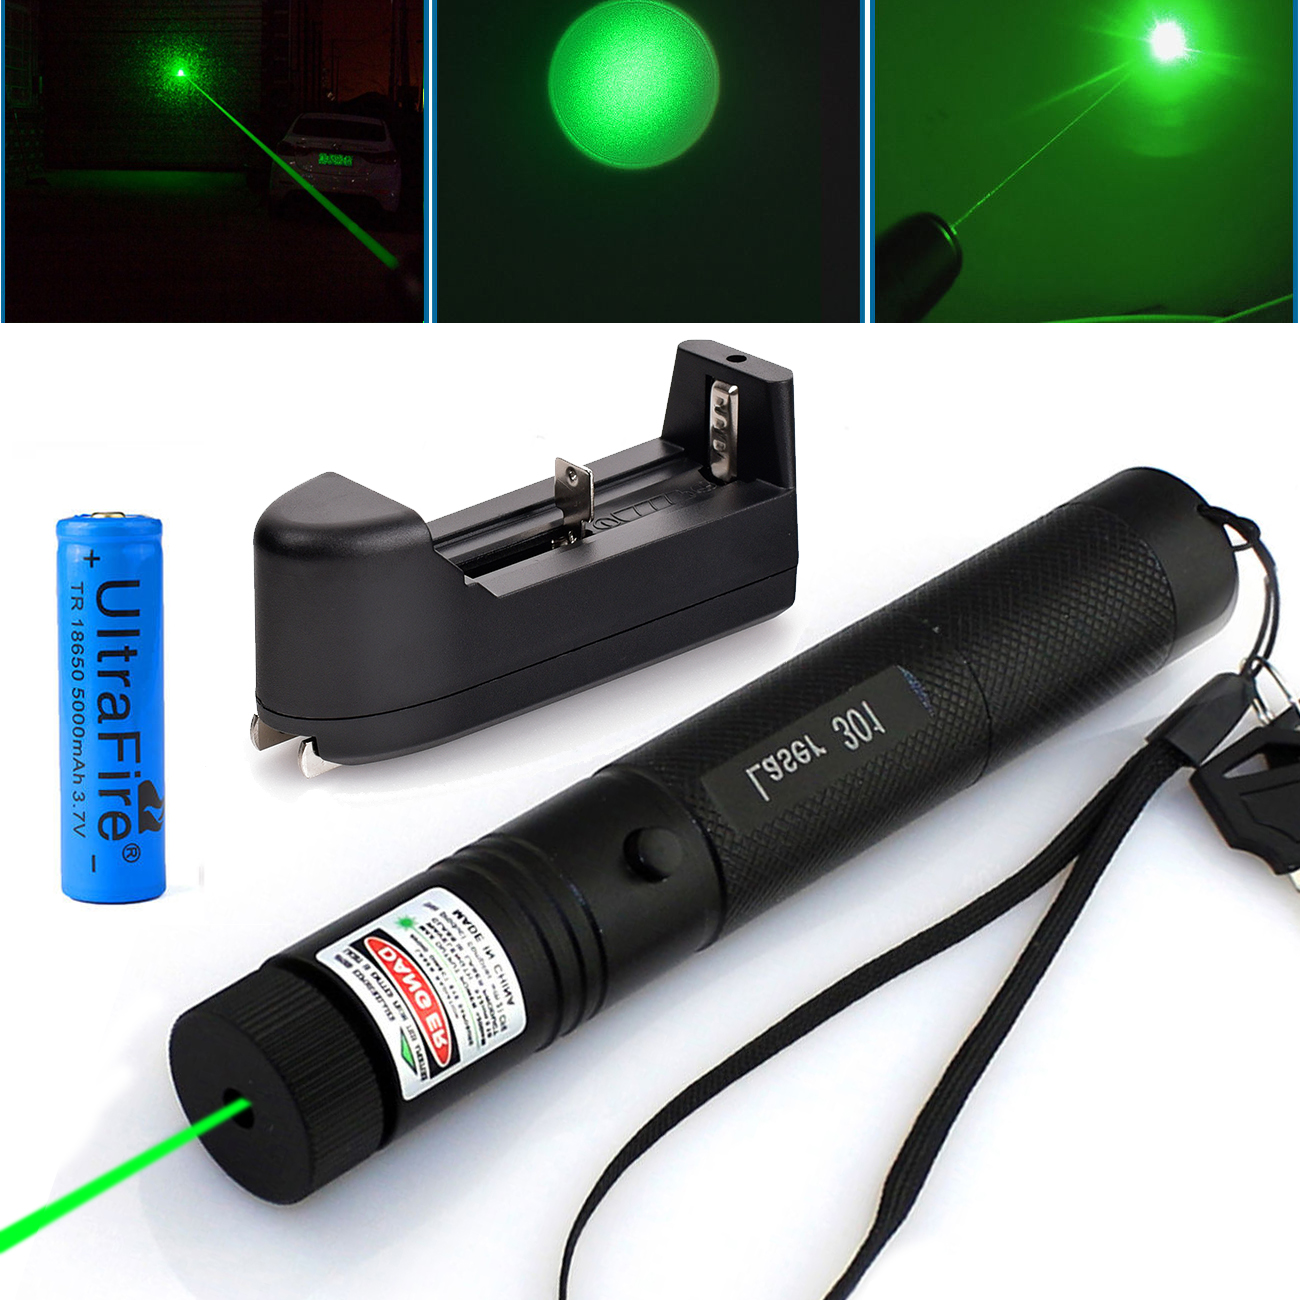 10Miles 532nm Green Laser Pointer Visible Beam Light +18650+Charger Hot